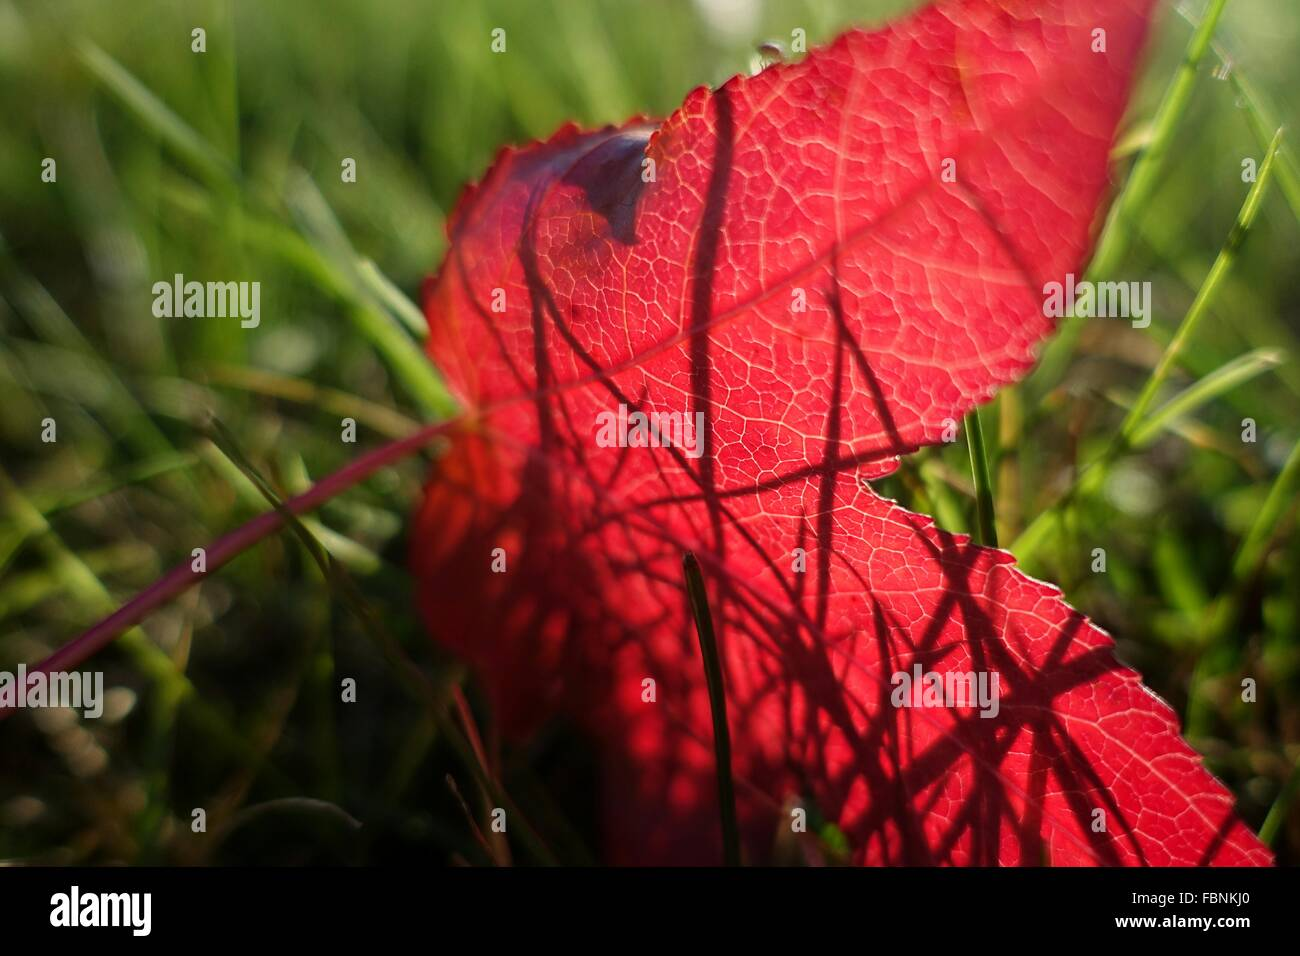 Close-Up Of Red Leaf In Meadow - Stock Image